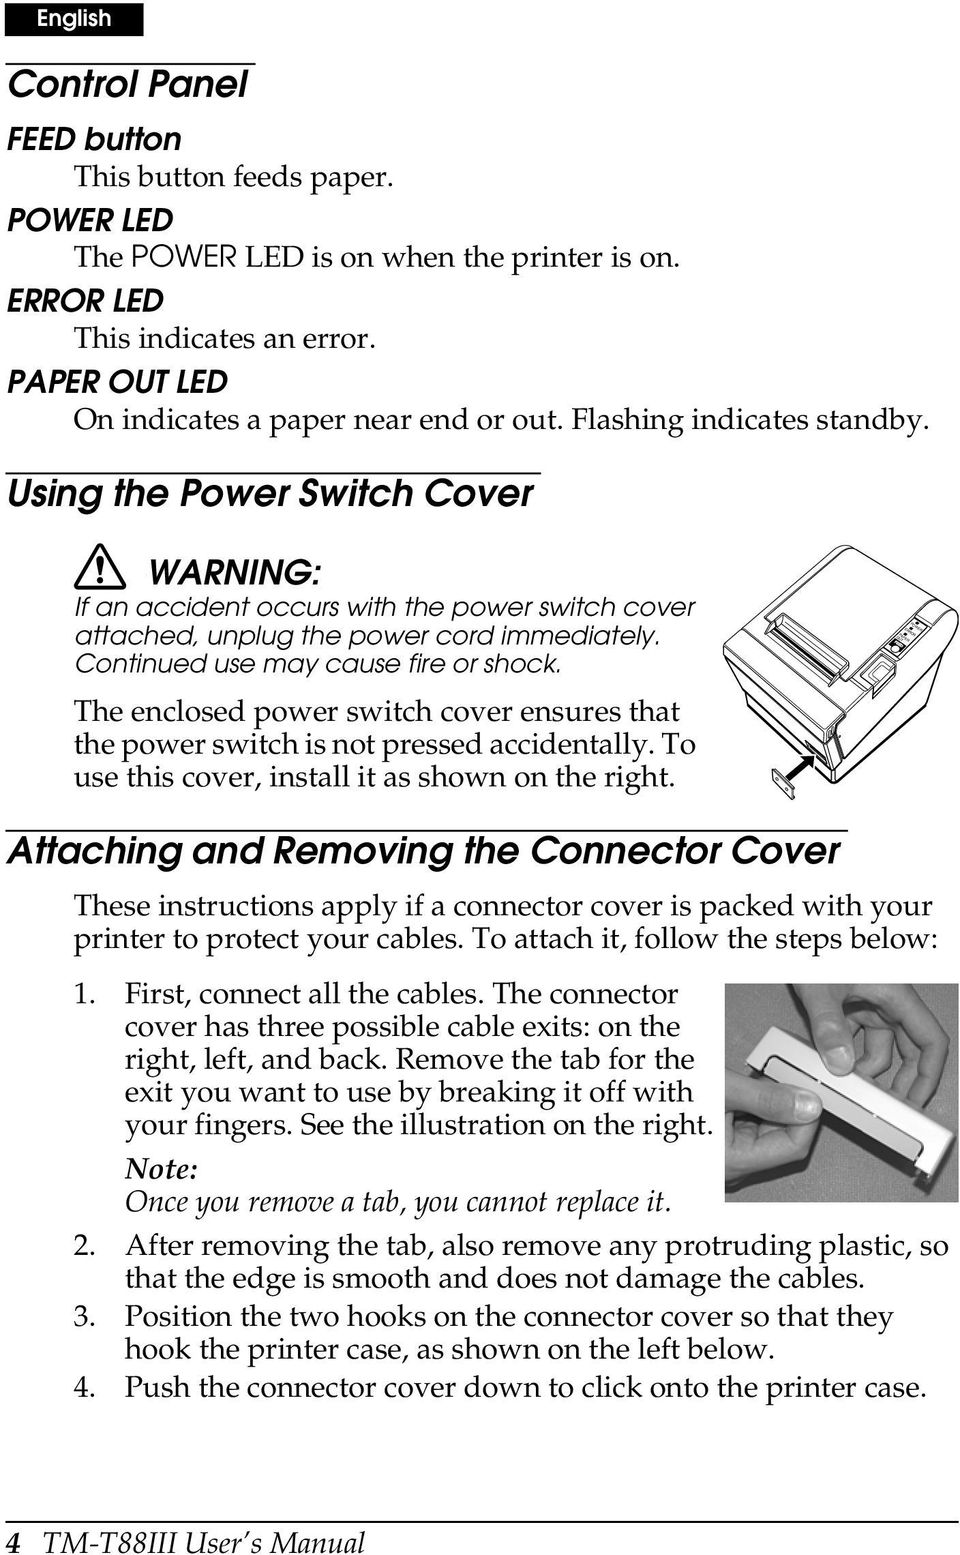 The enclosed power switch cover ensures that the power switch is not pressed accidentally. To use this cover, install it as shown on the right.